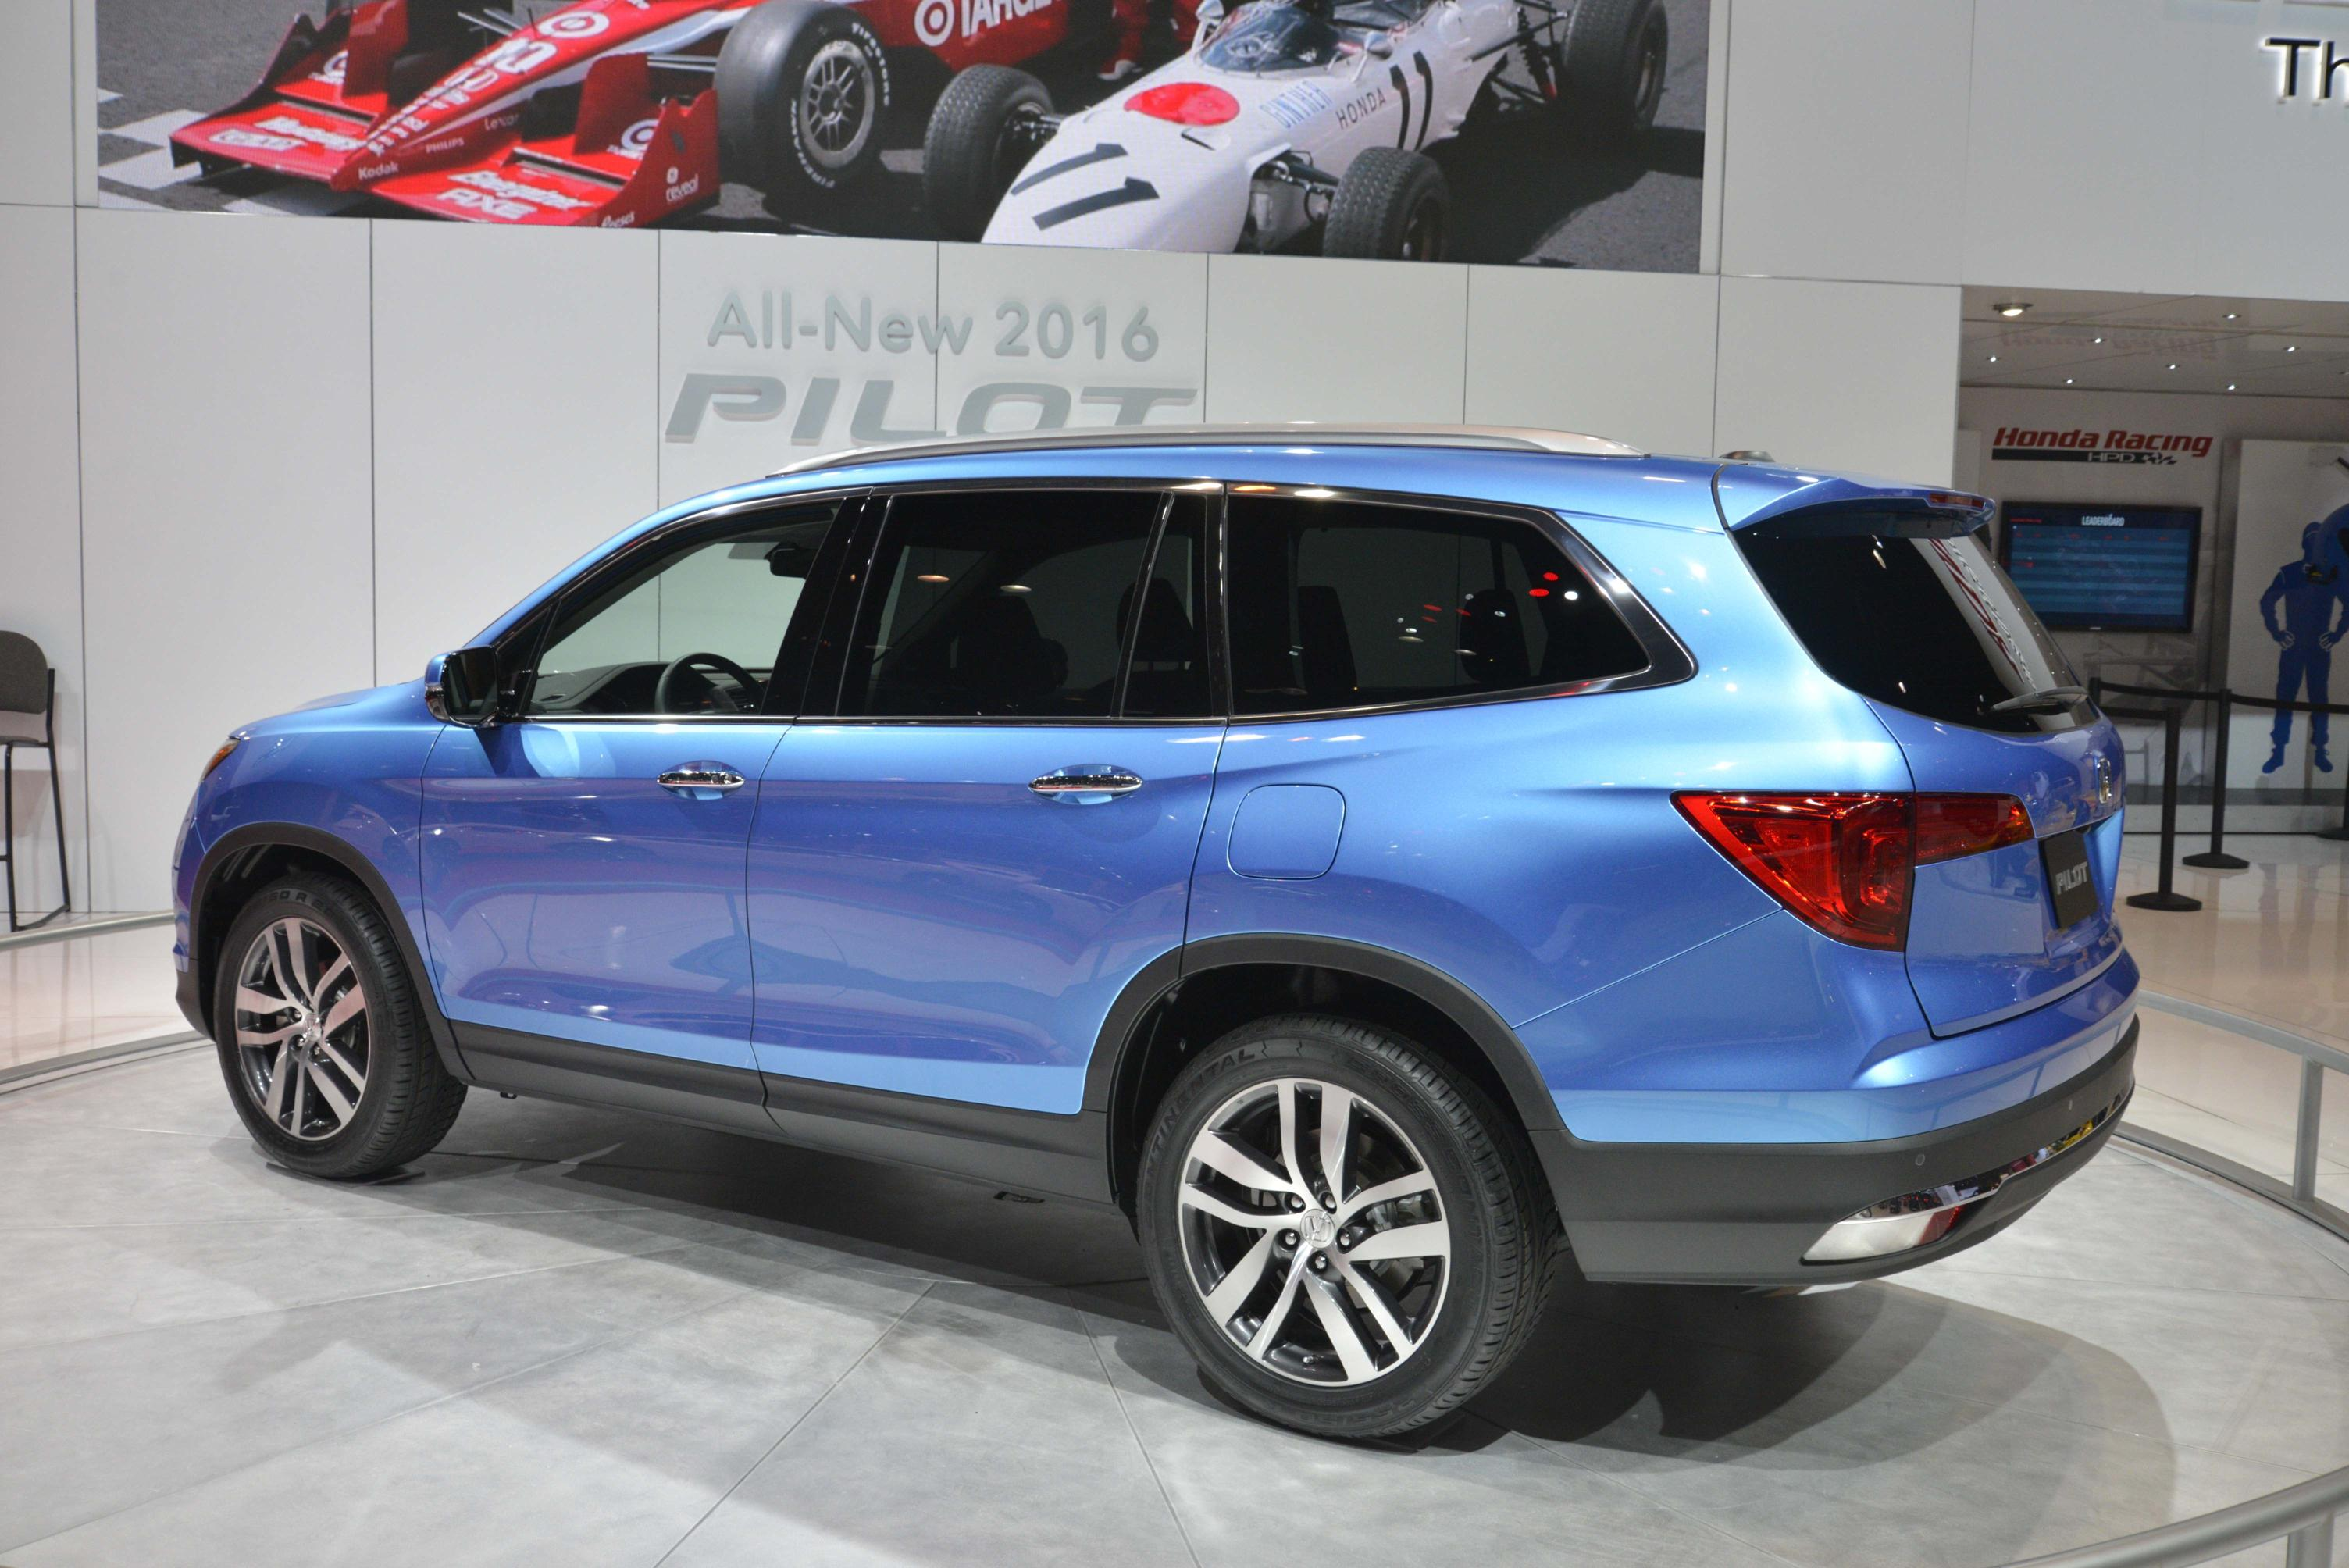 2016 honda pilot is lighter and sexier for chicago auto show debut autoevolution. Black Bedroom Furniture Sets. Home Design Ideas